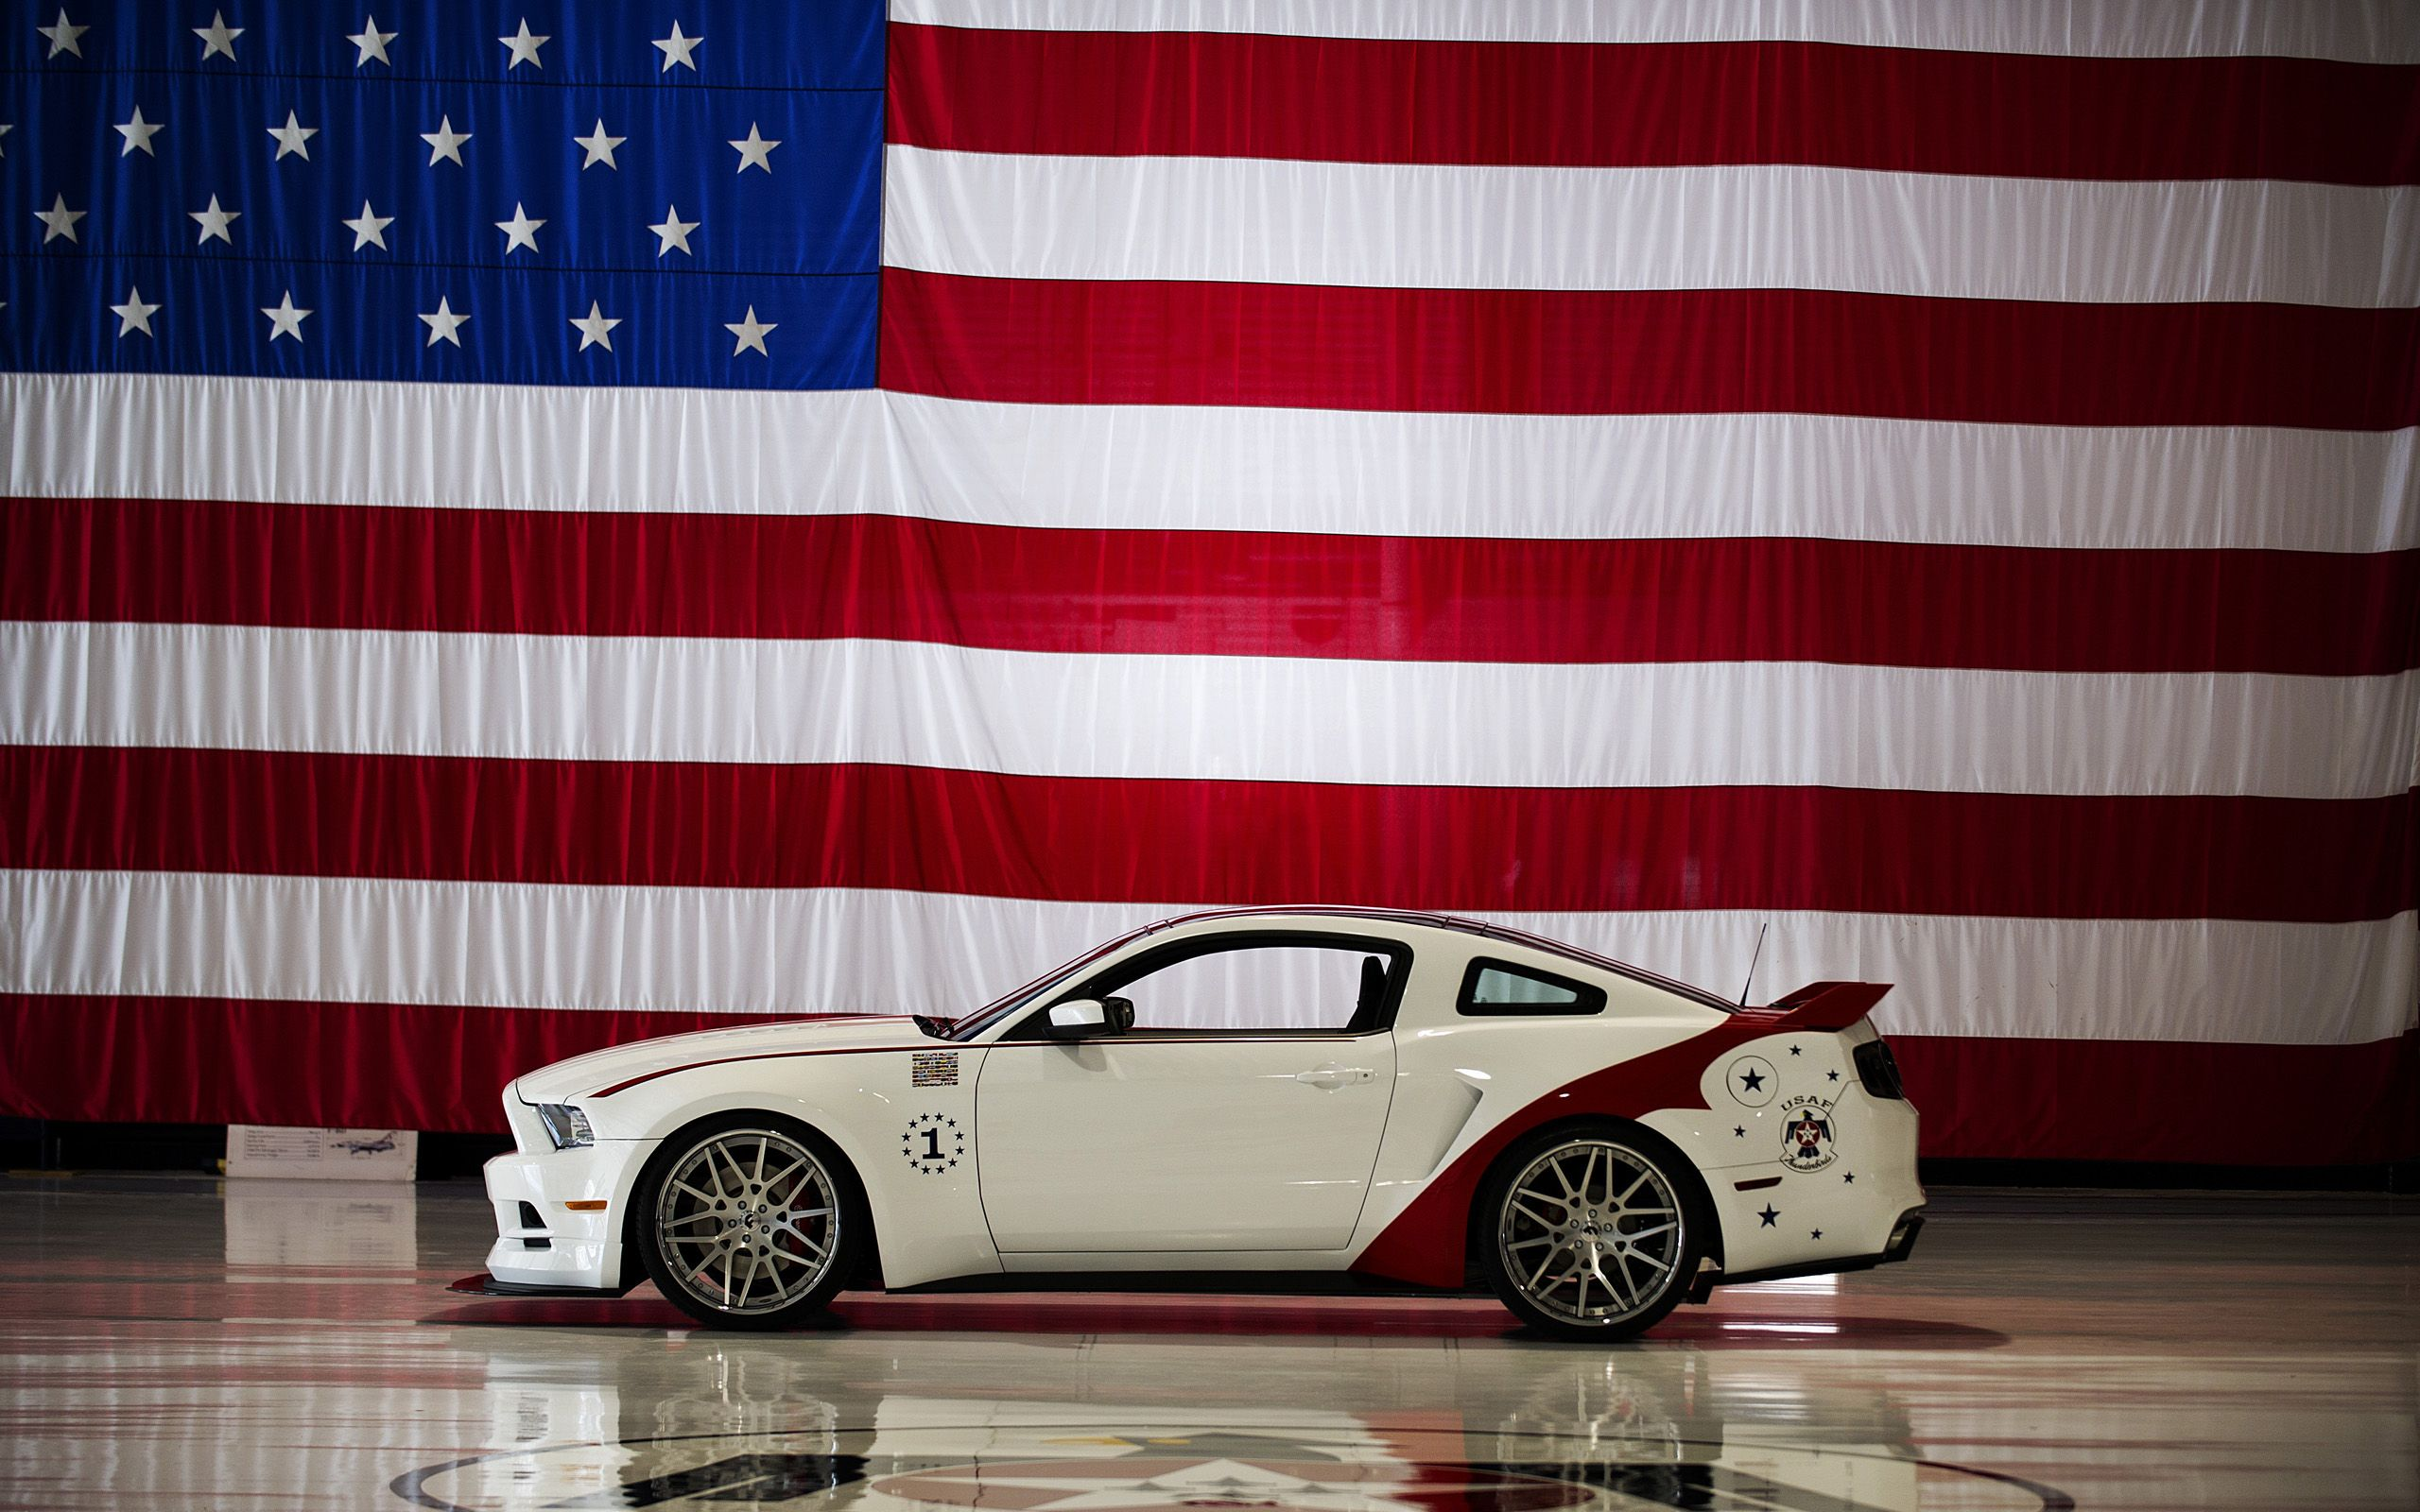 2560x1600 2014 U.S. Air Force Thunderbirds Edition Ford Mustang GT - Flag - 3 ...